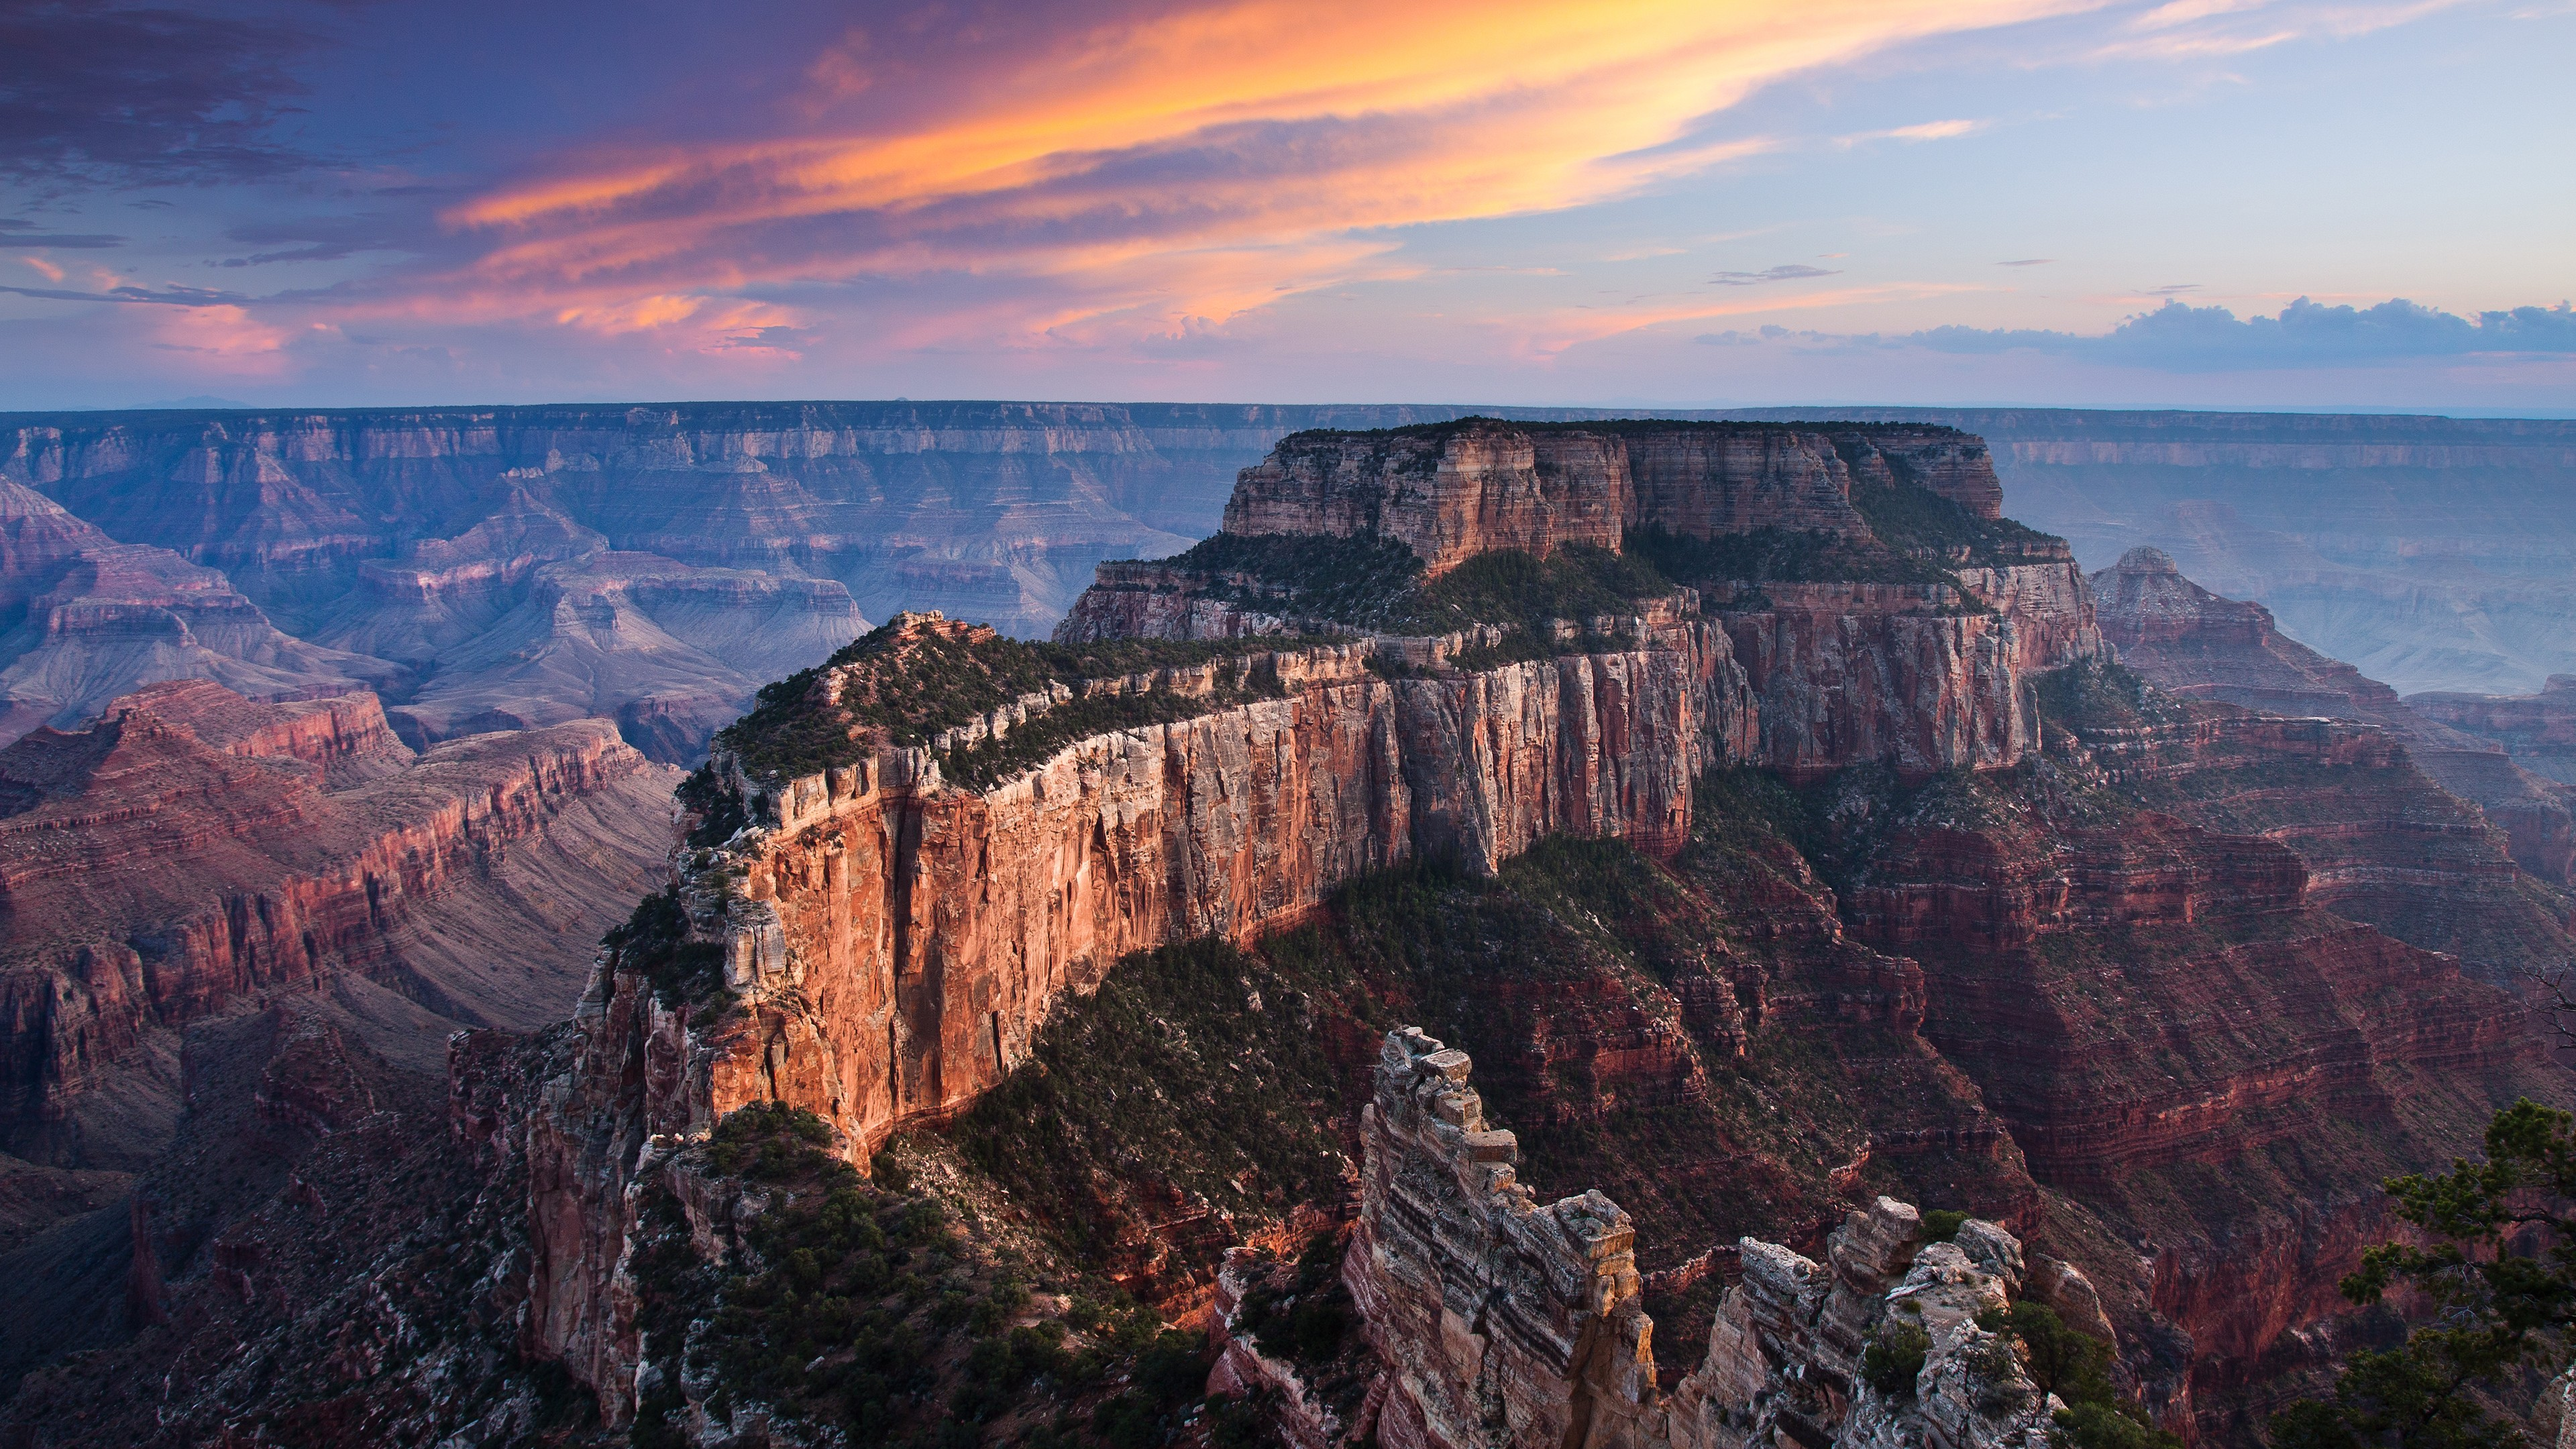 Wallpaper Hd Collection Download Grand Canyon 電腦桌布 桌面背景 3840x2160 Id 568664